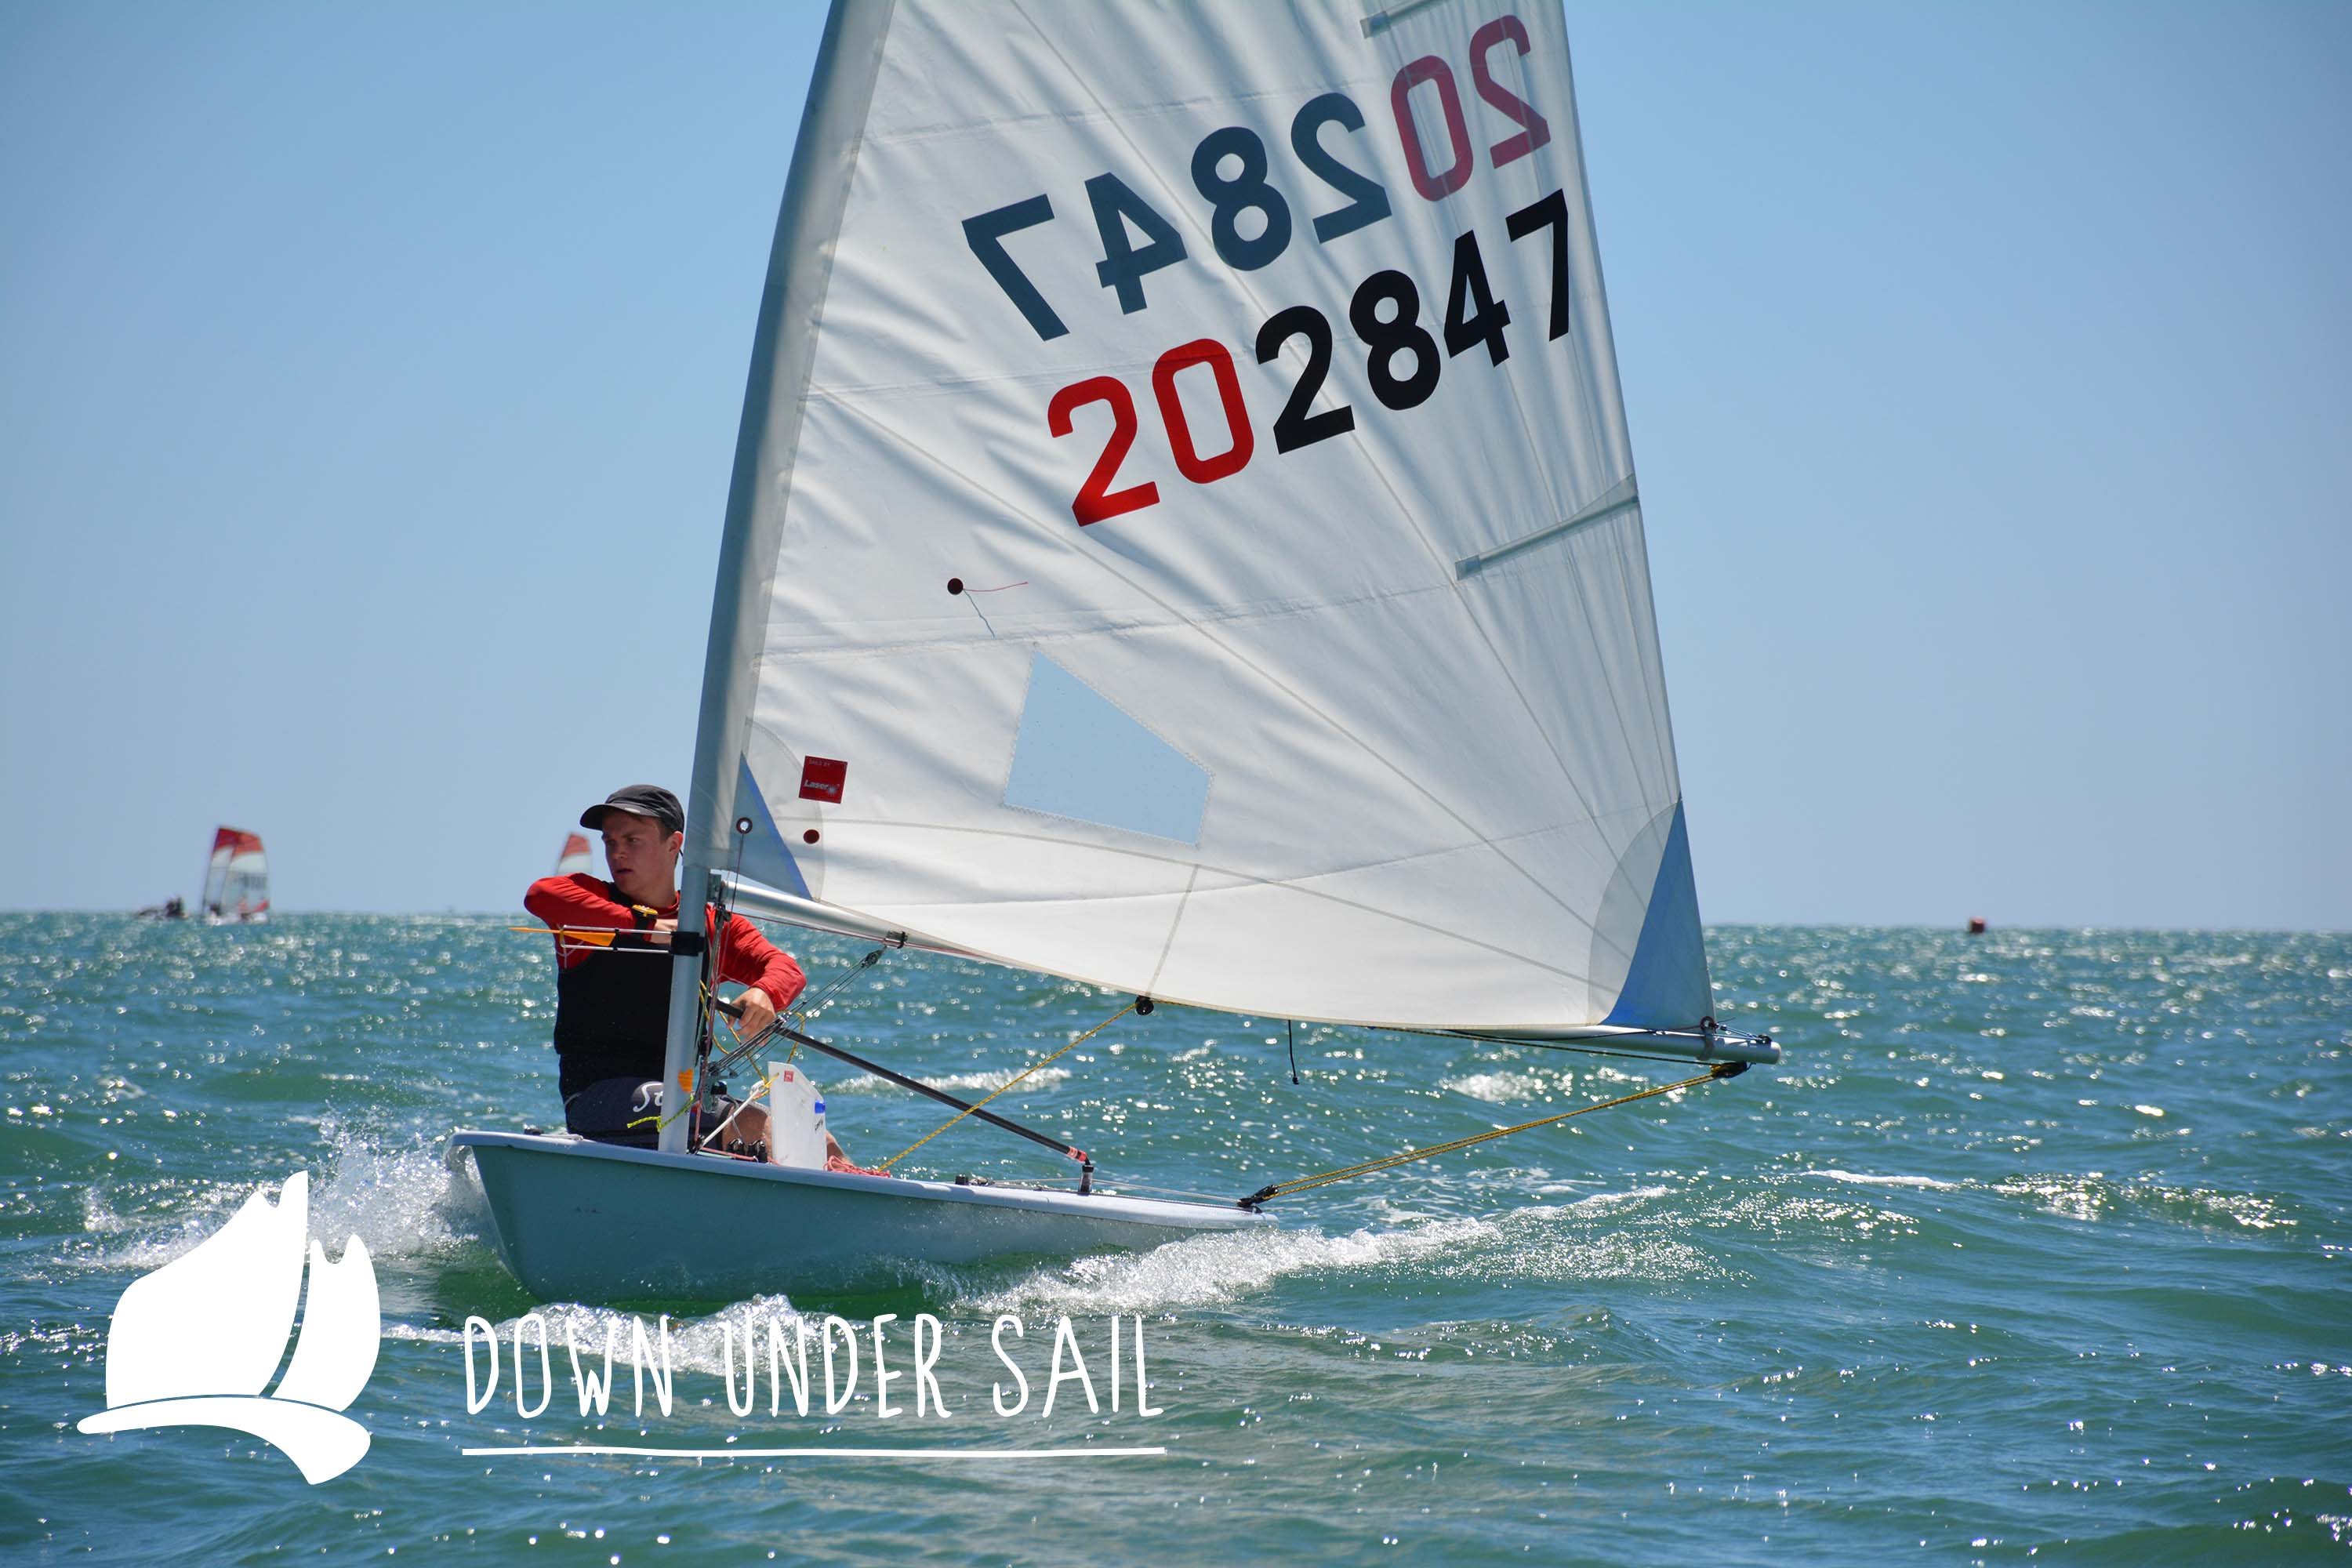 Adelaide's John Gordon was the winner in the Laser Radial fleet.